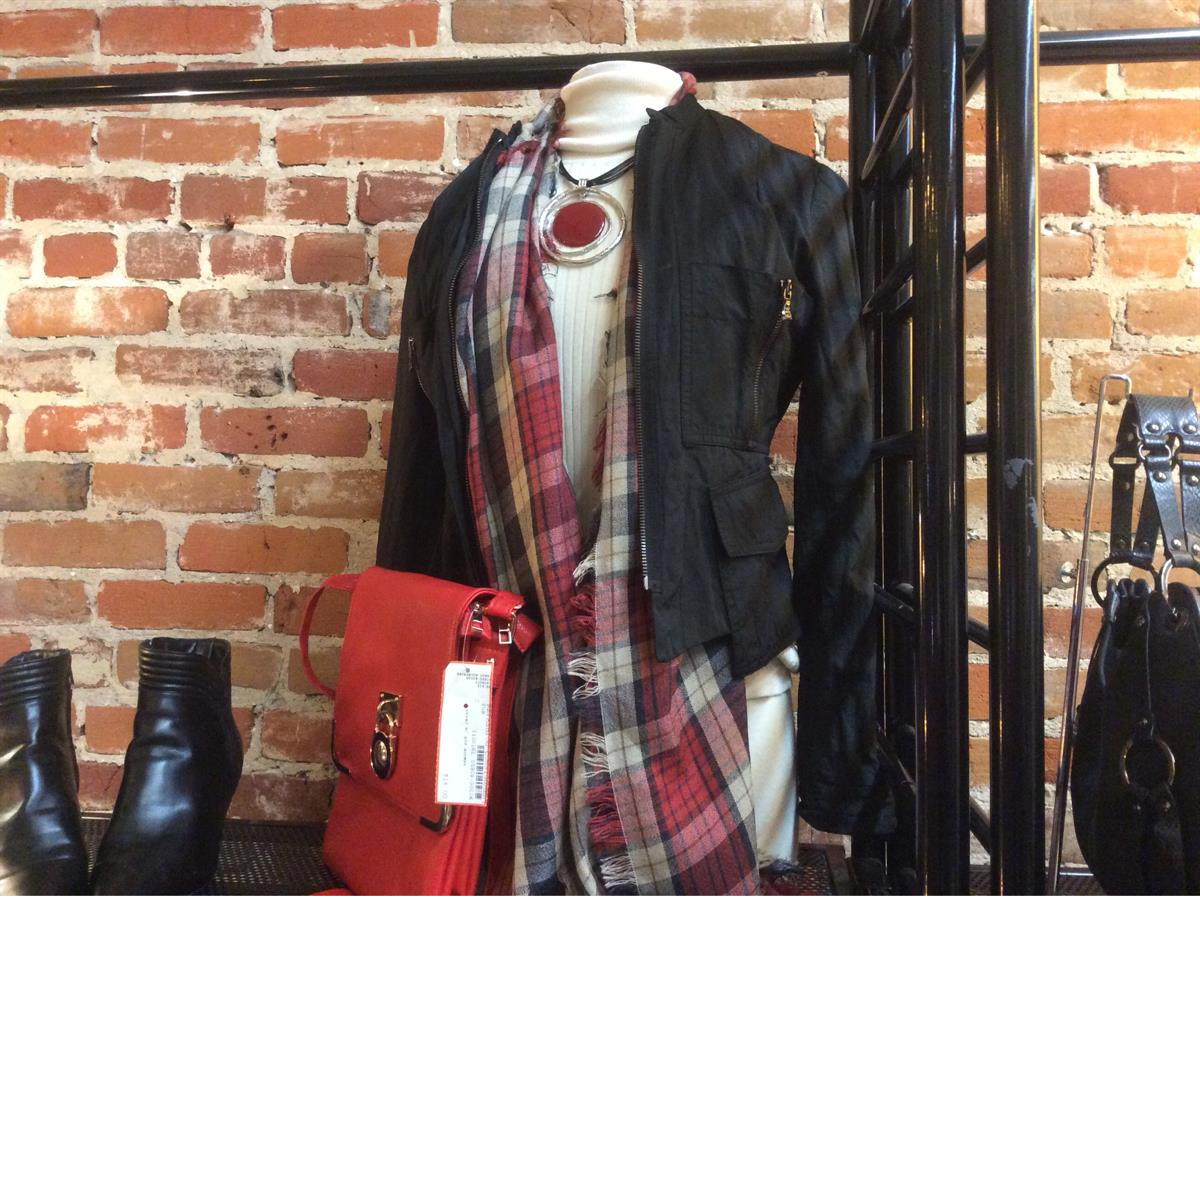 Consigned women's casual wear with accessories at Refashion Consigned Furniture and Clothing